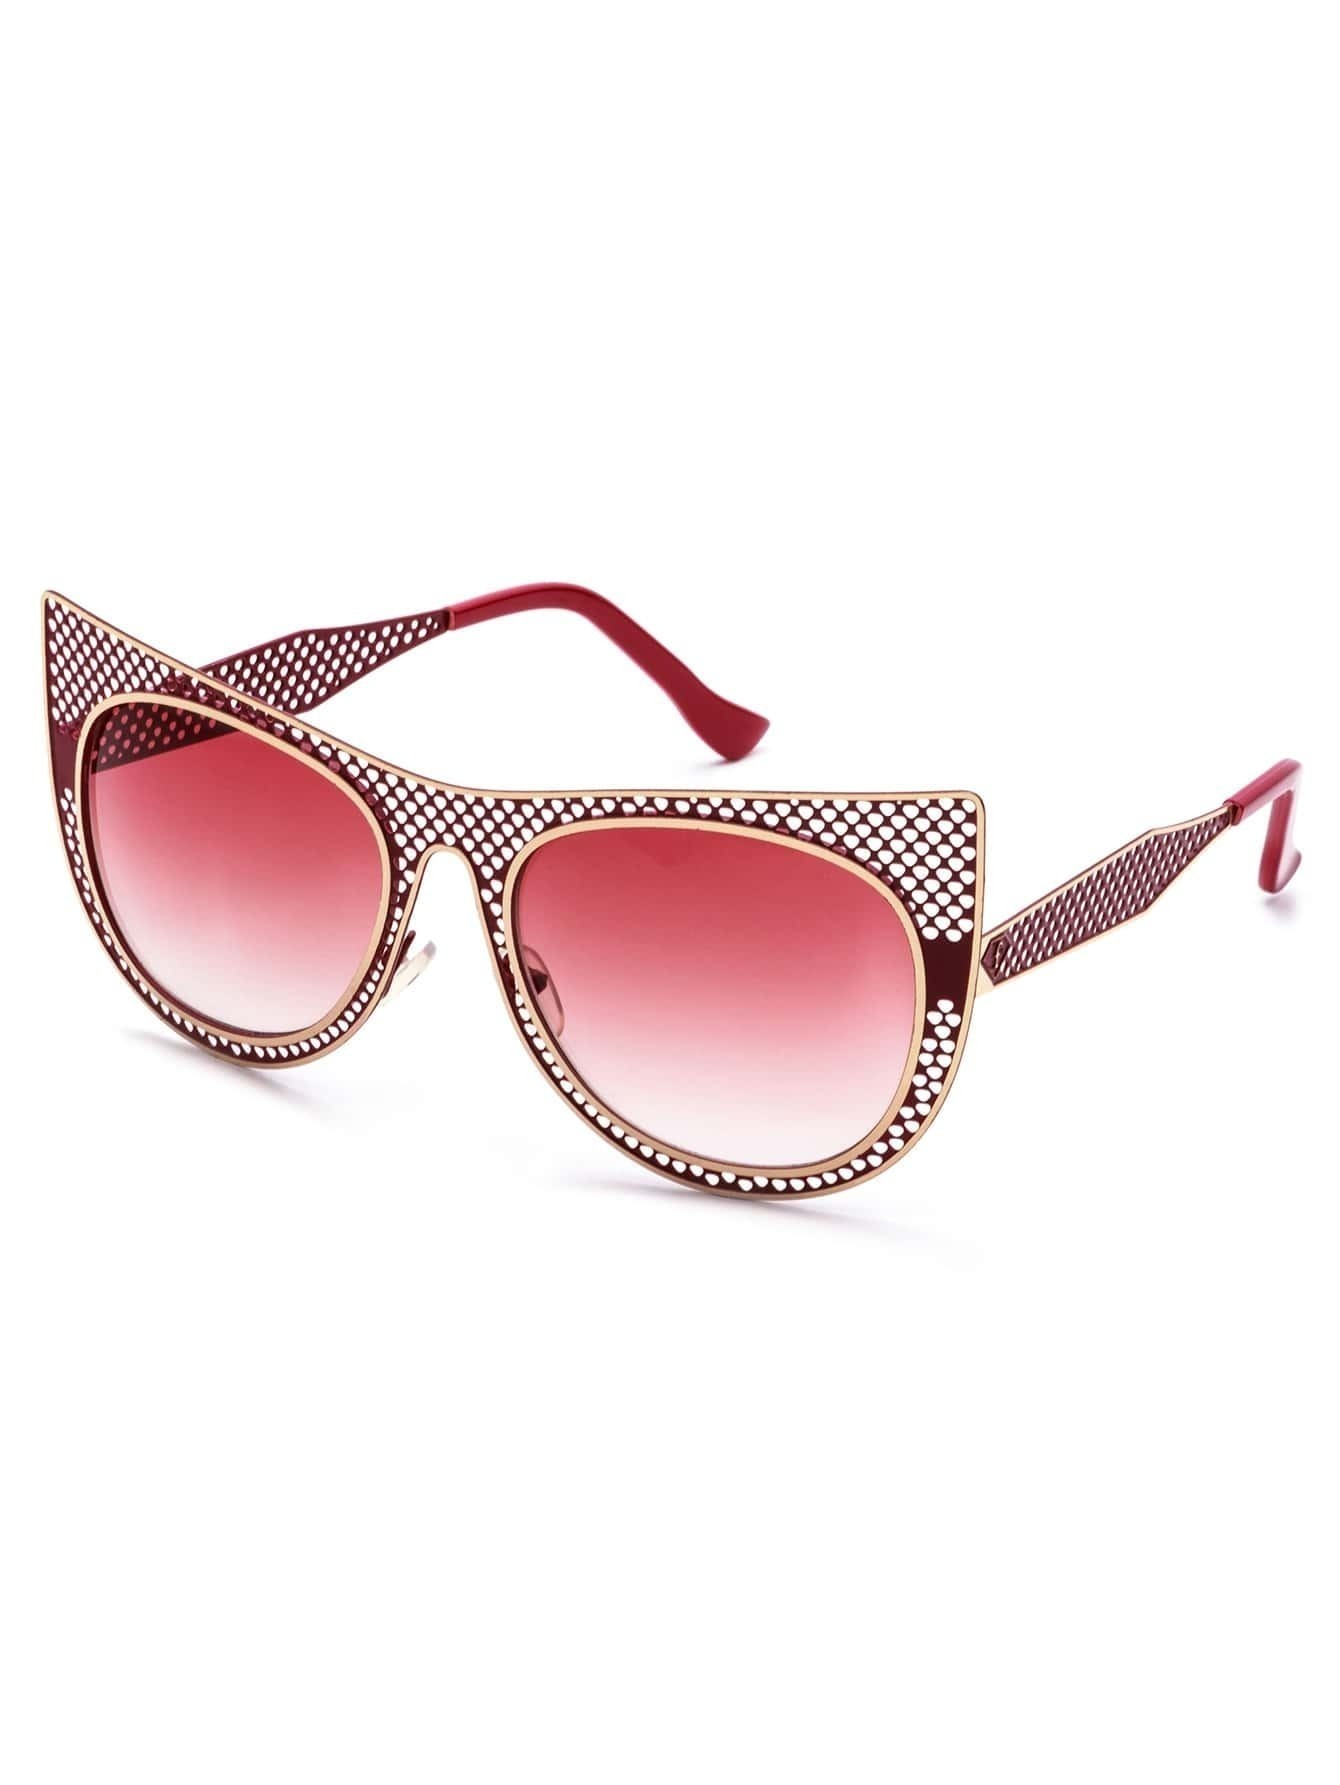 Red Hollow Frame Cat Eye Sunglasses